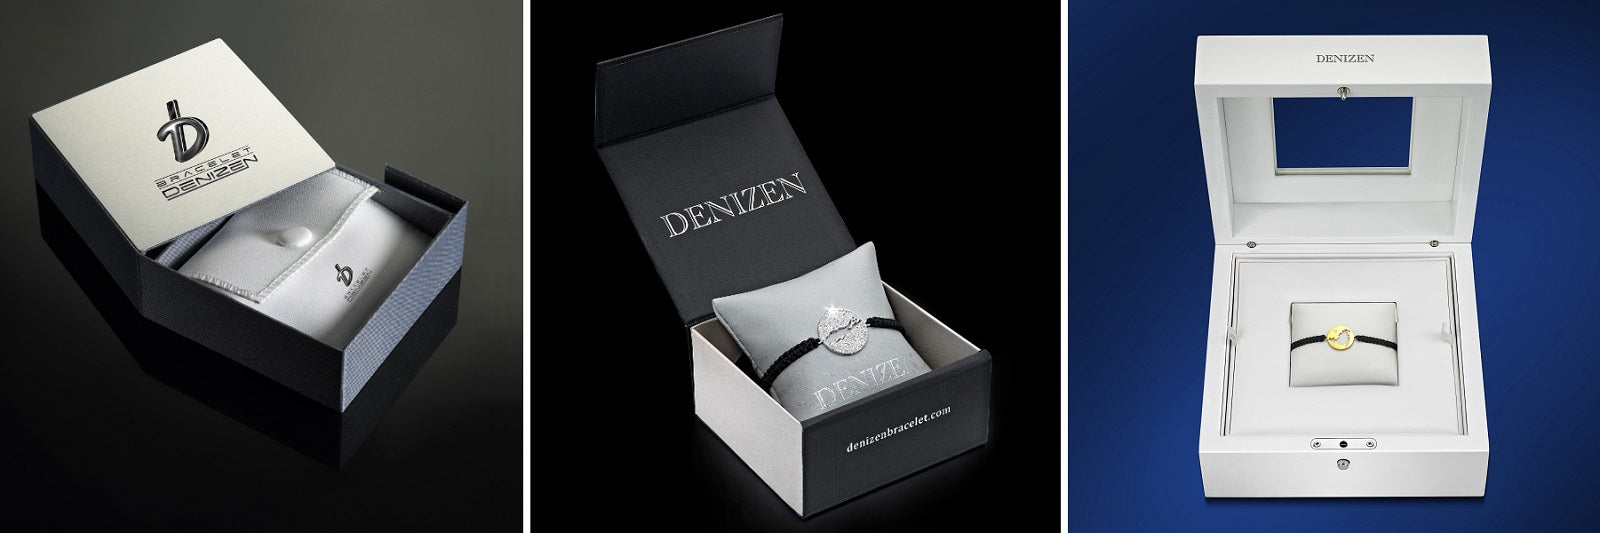 DENIZEN Bracelet premium and luxury lines packaging